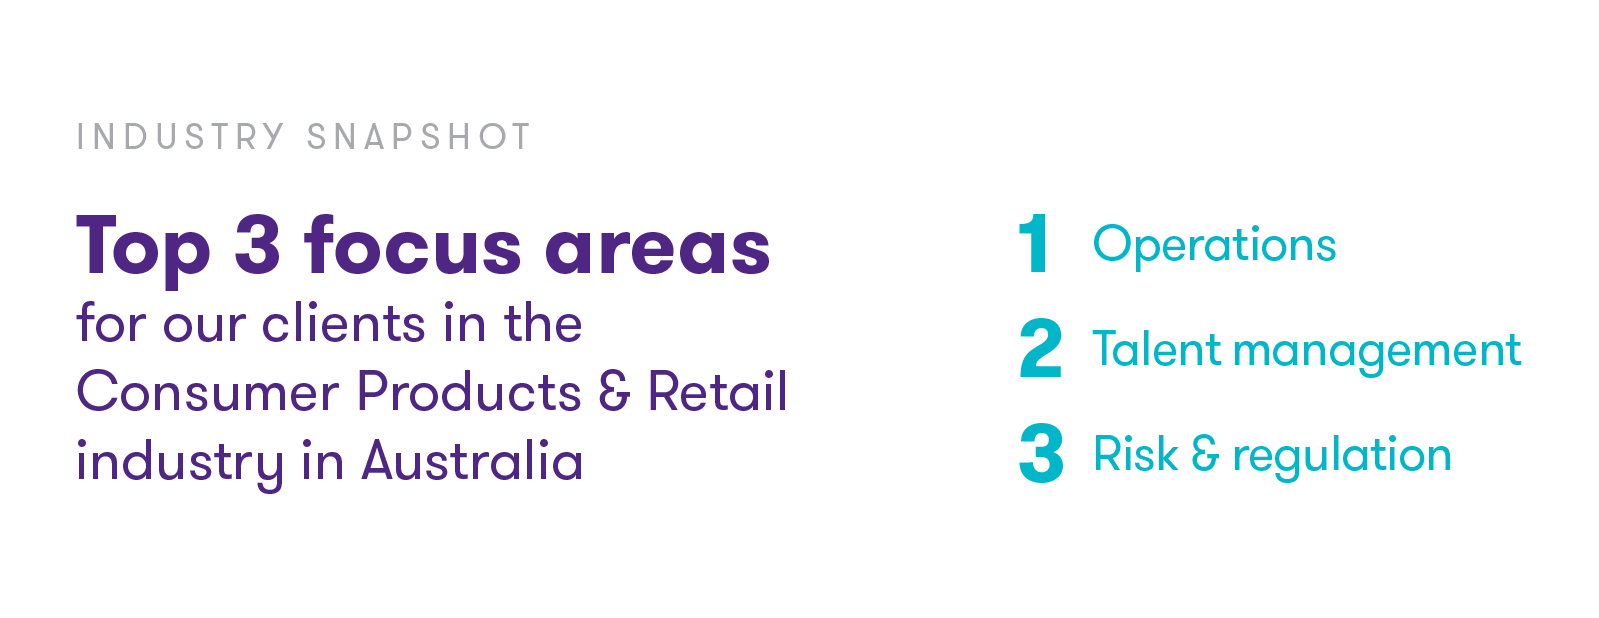 6Box Consumer Products & Retail